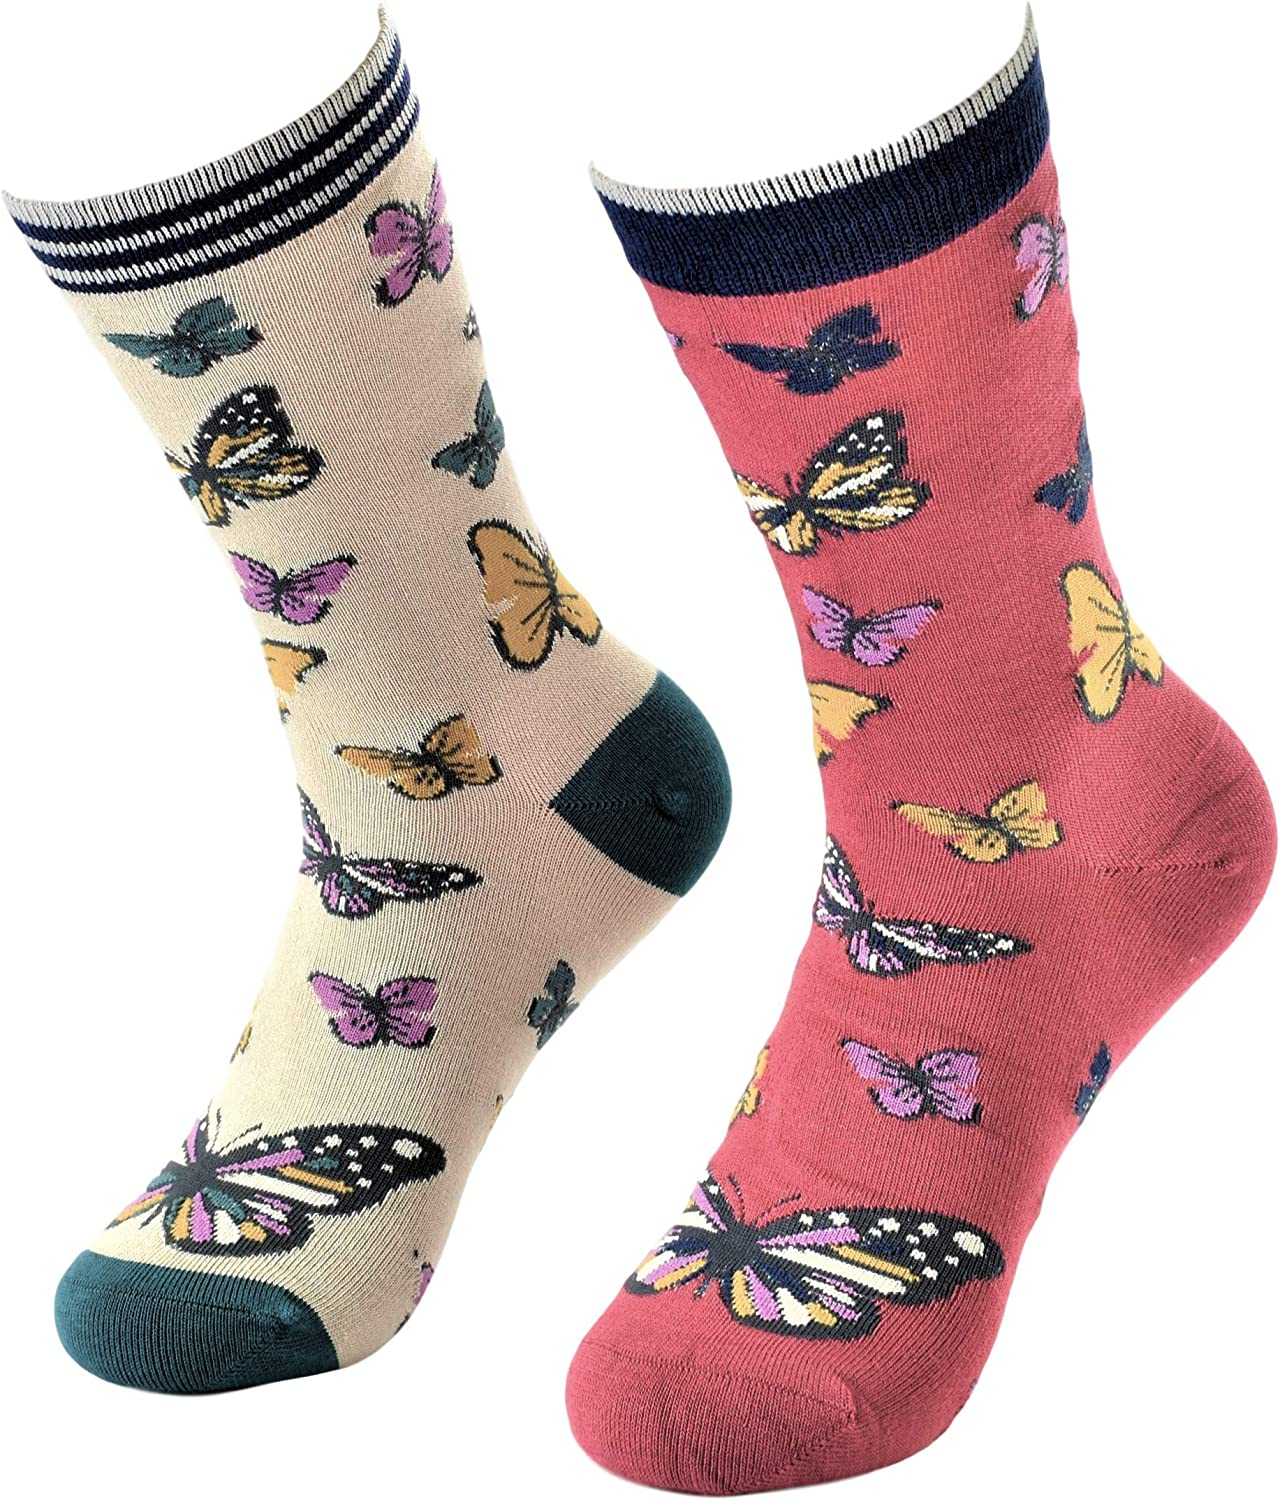 Assorted Socks Ladies Various Designs Soft High Quality Womans Size 4-7